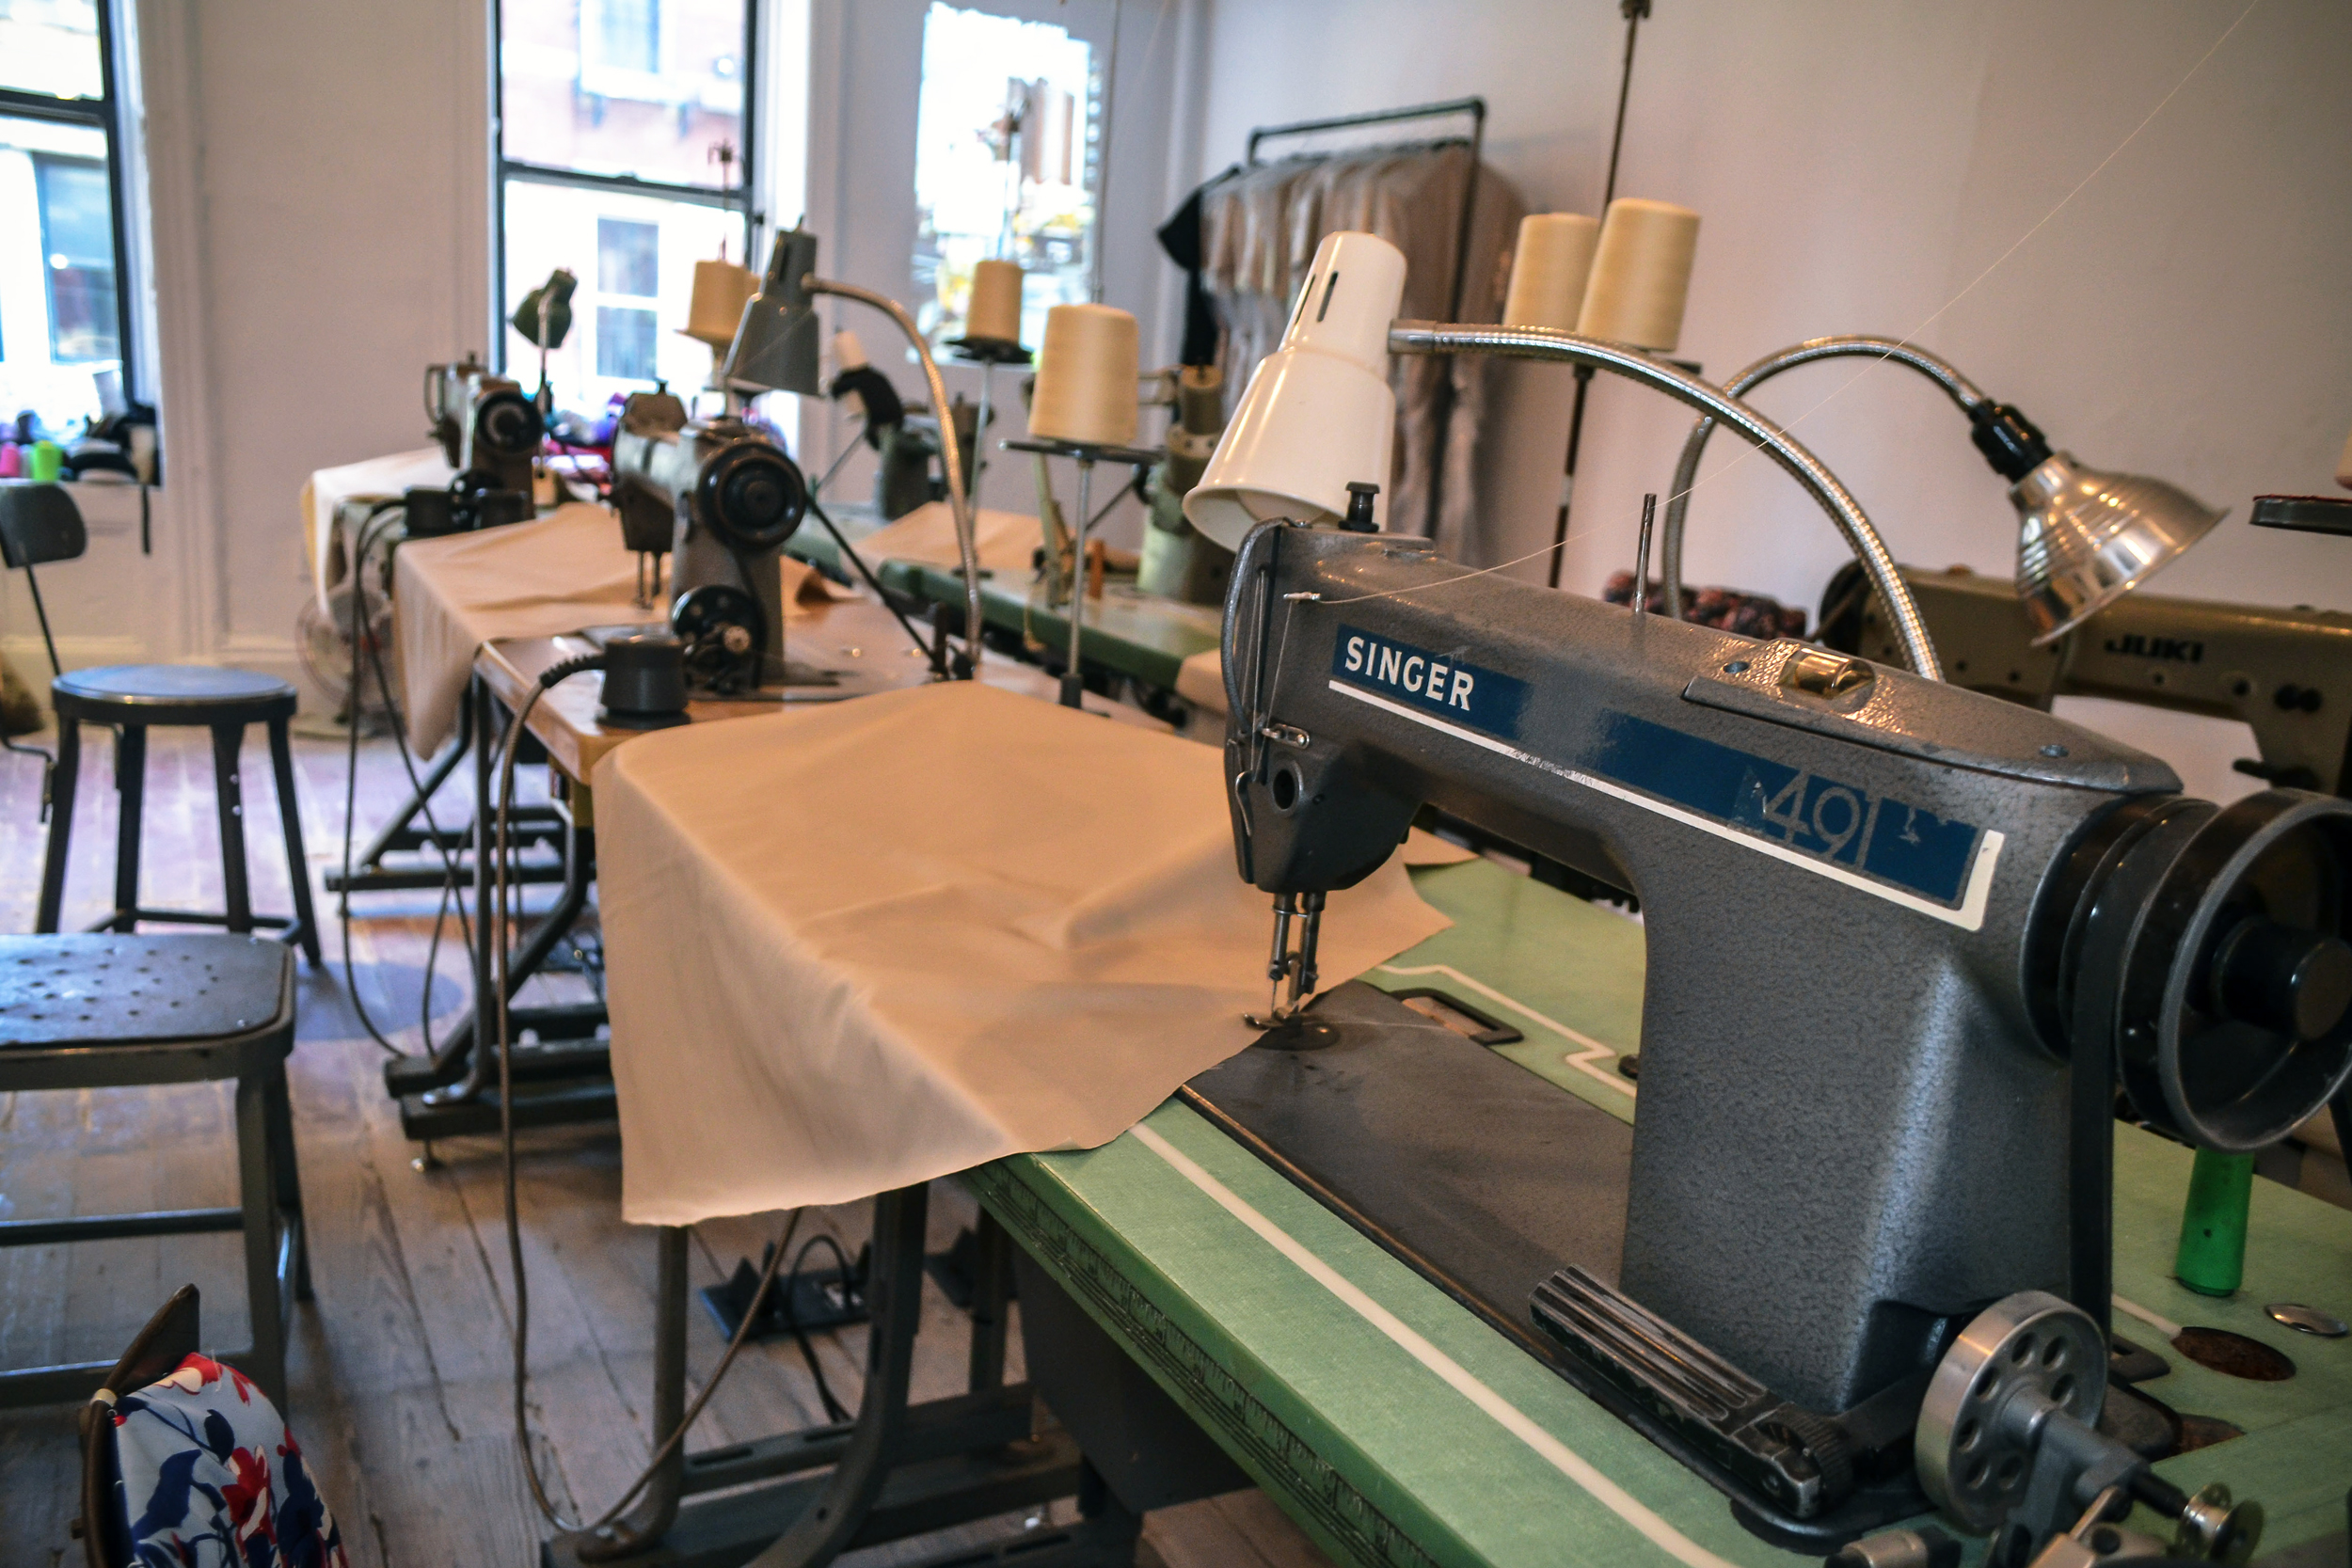 Image: Singer sewing machines in the Garment Shop.